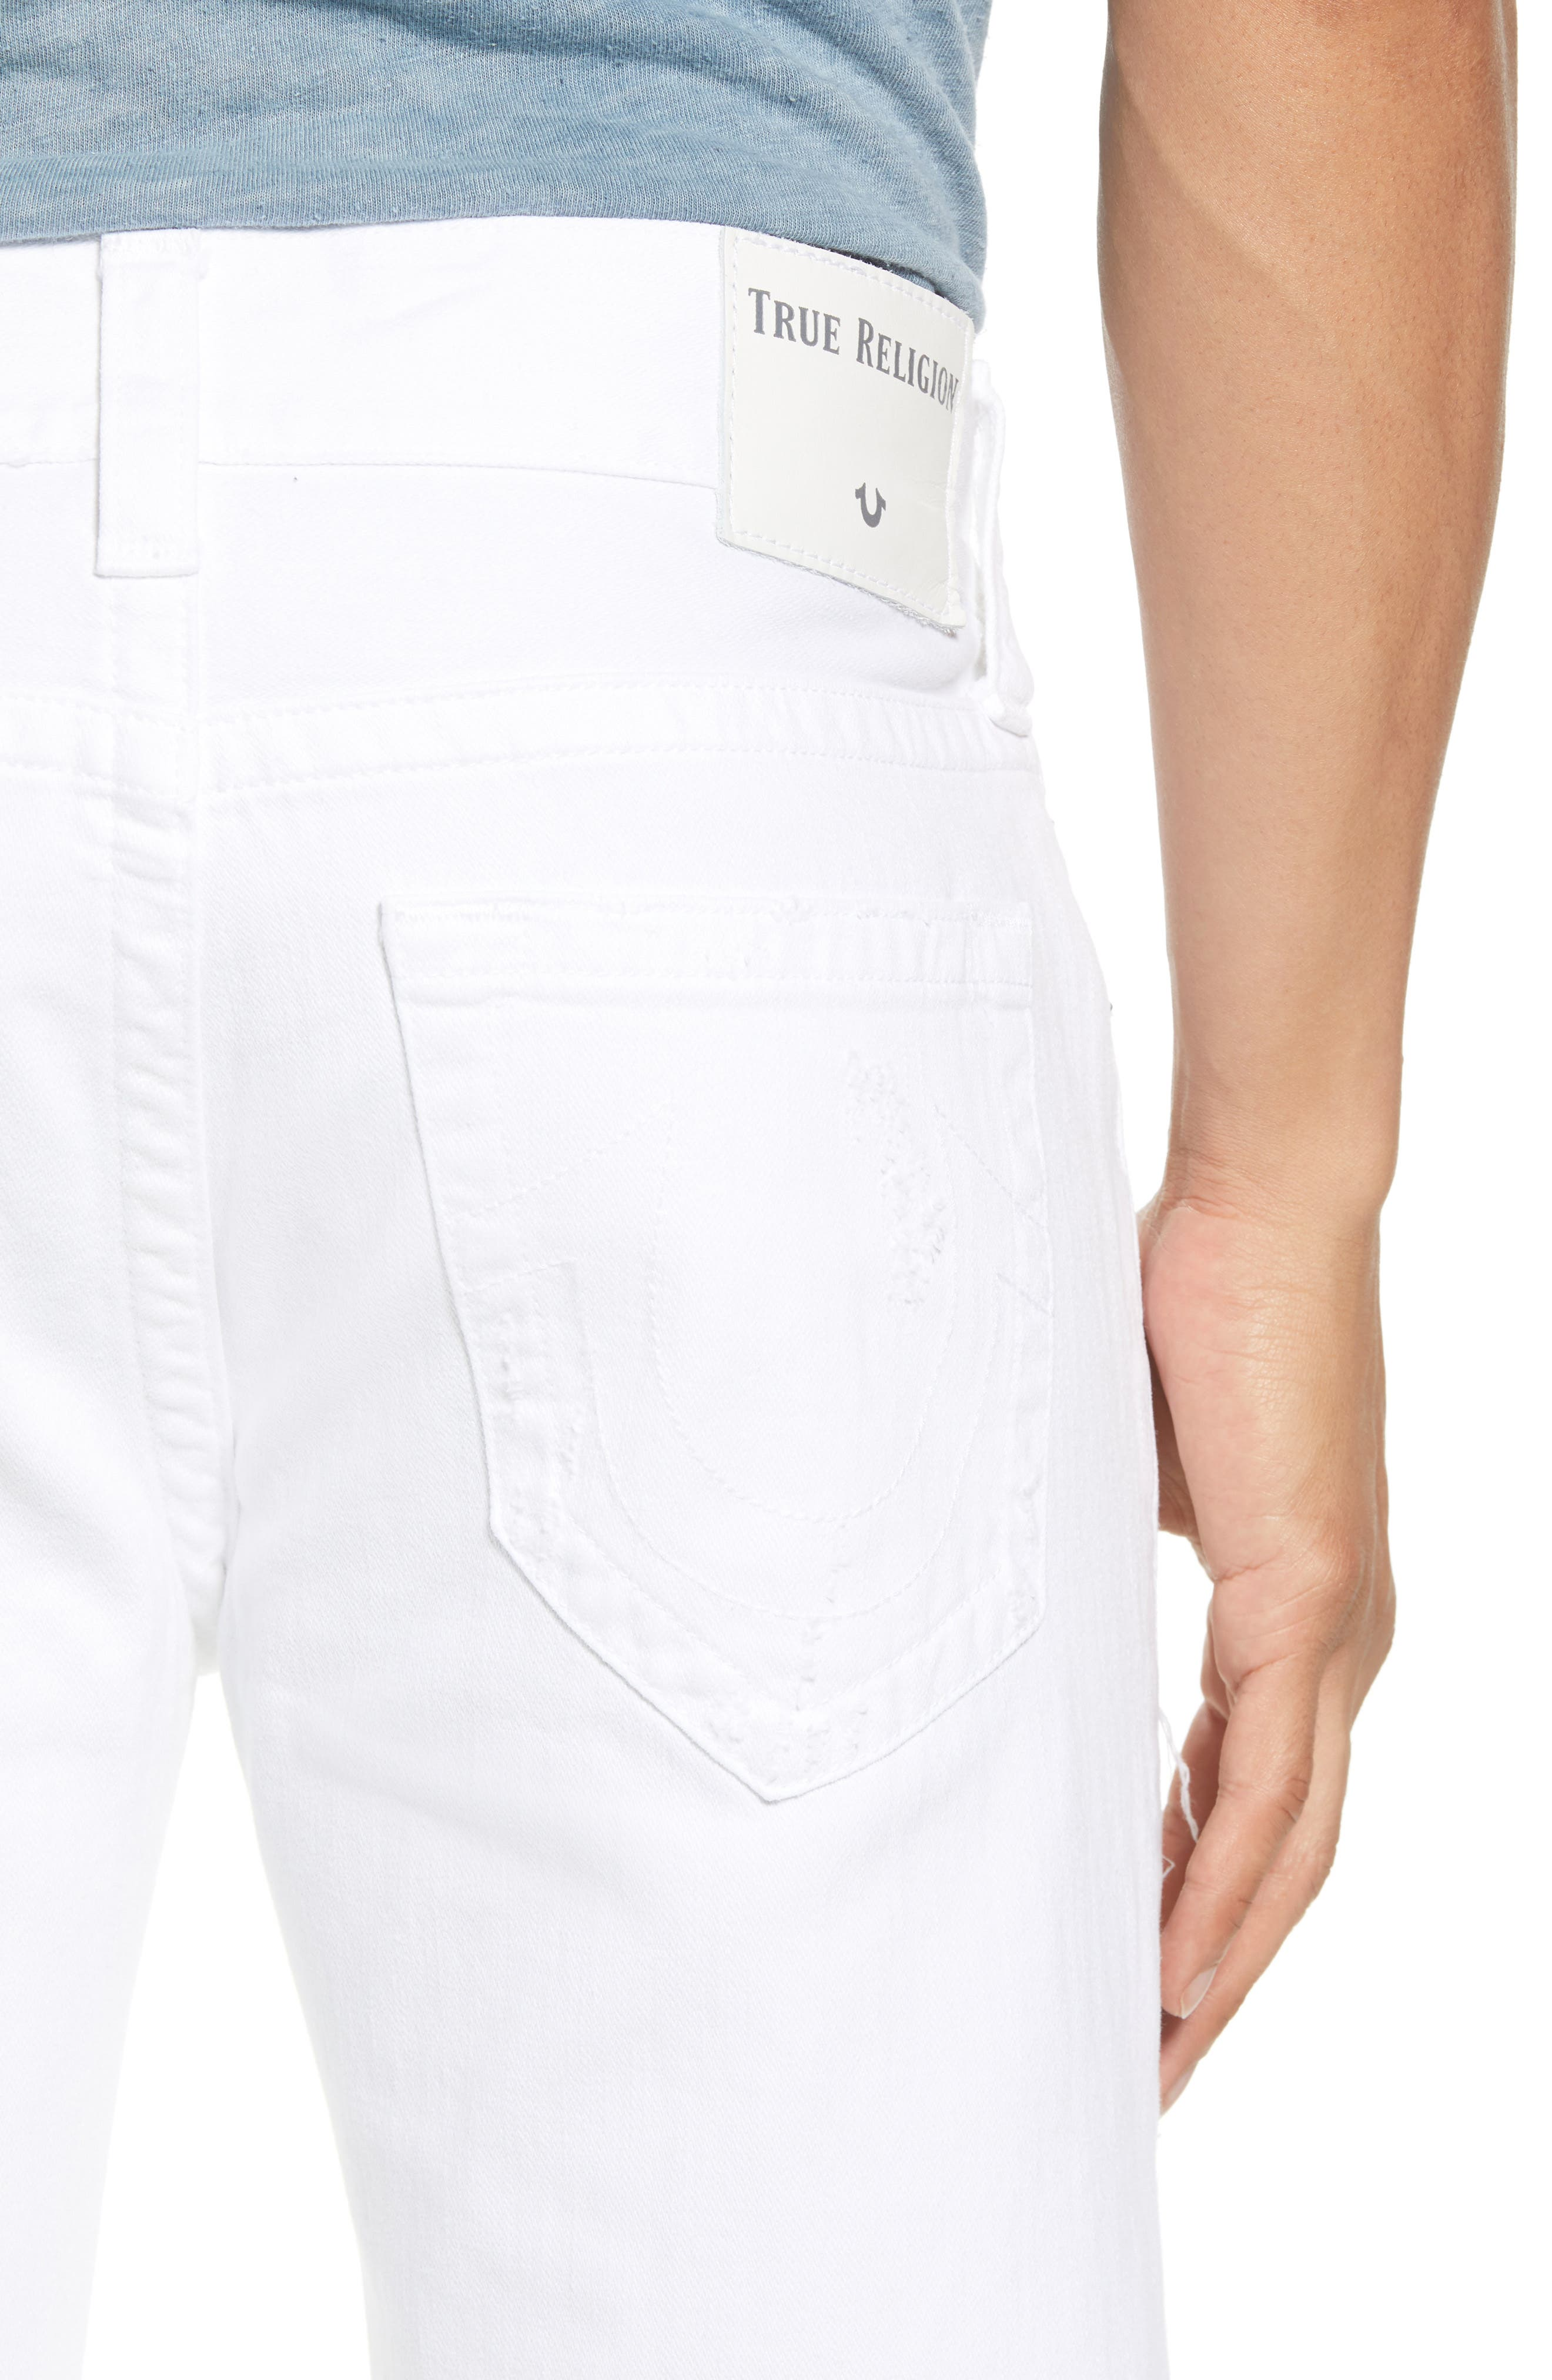 Rocco Skinny Fit jeans,                             Alternate thumbnail 4, color,                             WHITE VOLCANIC ASH